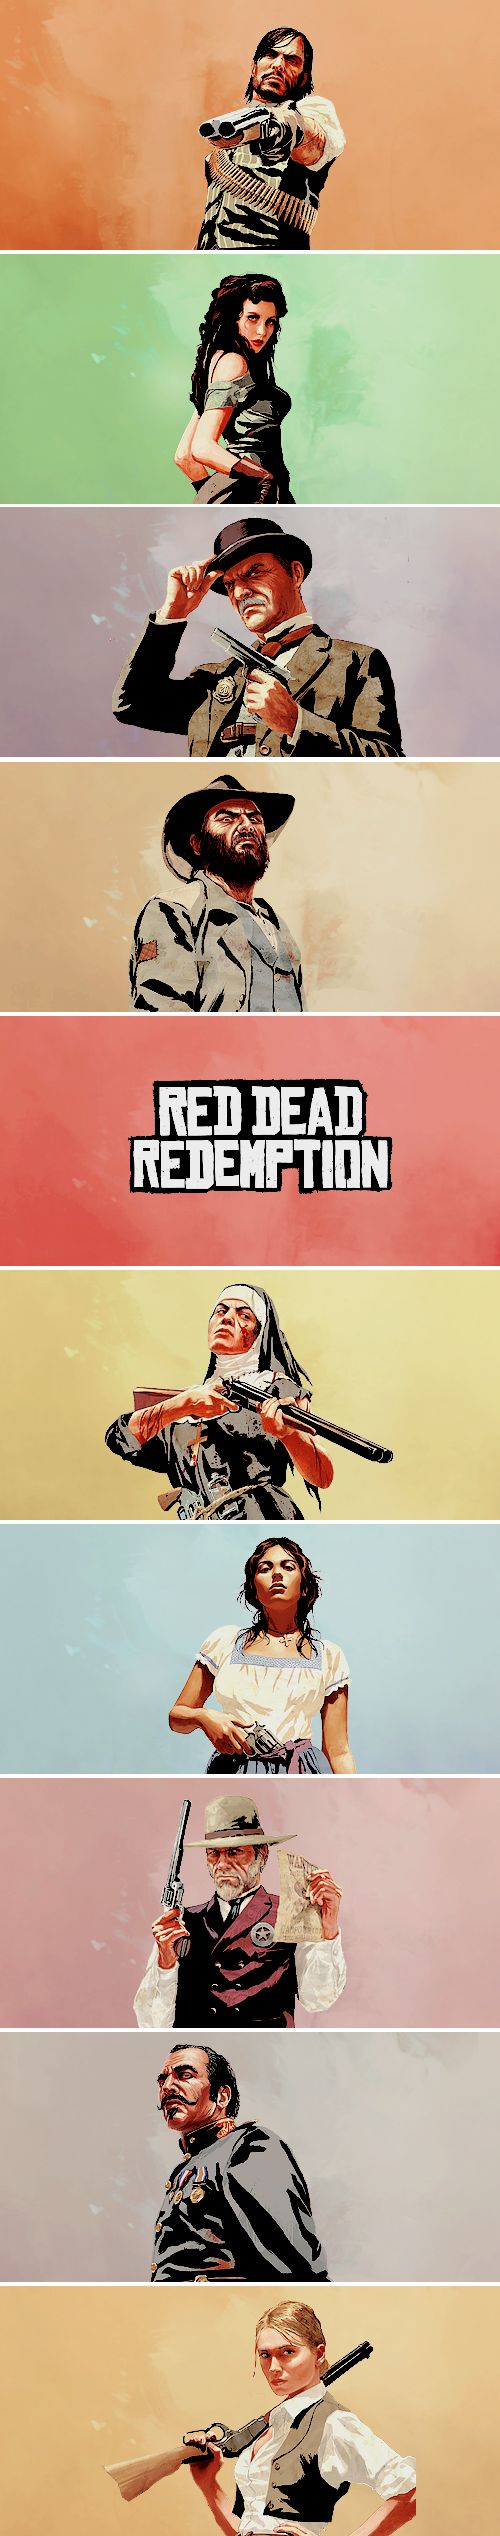 Red Dead Redemption: Moral degeneracy waits for no man.